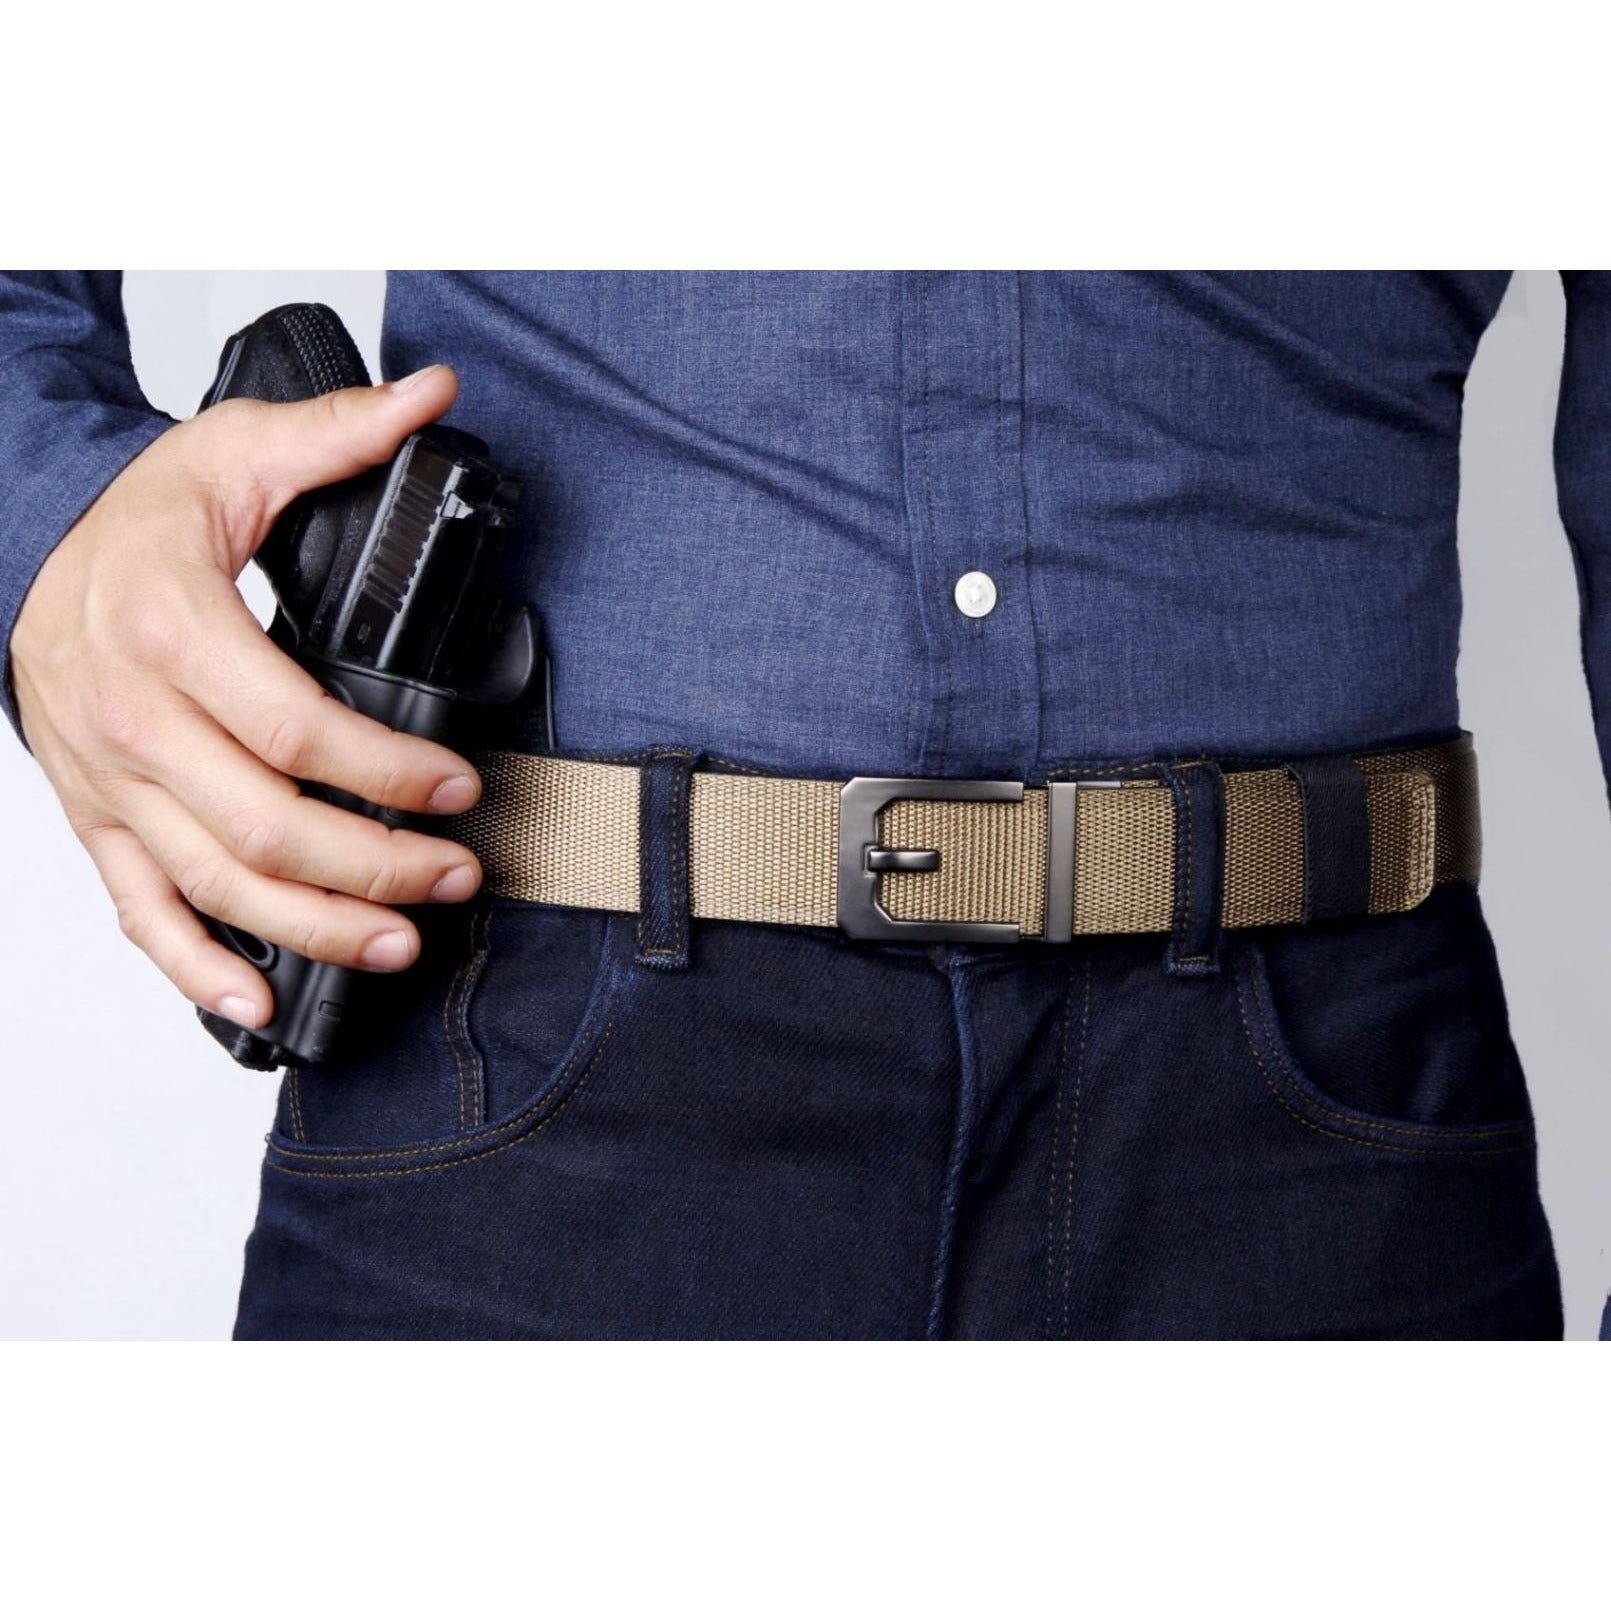 Kore Essentials X3 Tactical Gun Belt : The trakline seems like an ordinary belt with an ordinary buckle, but it.